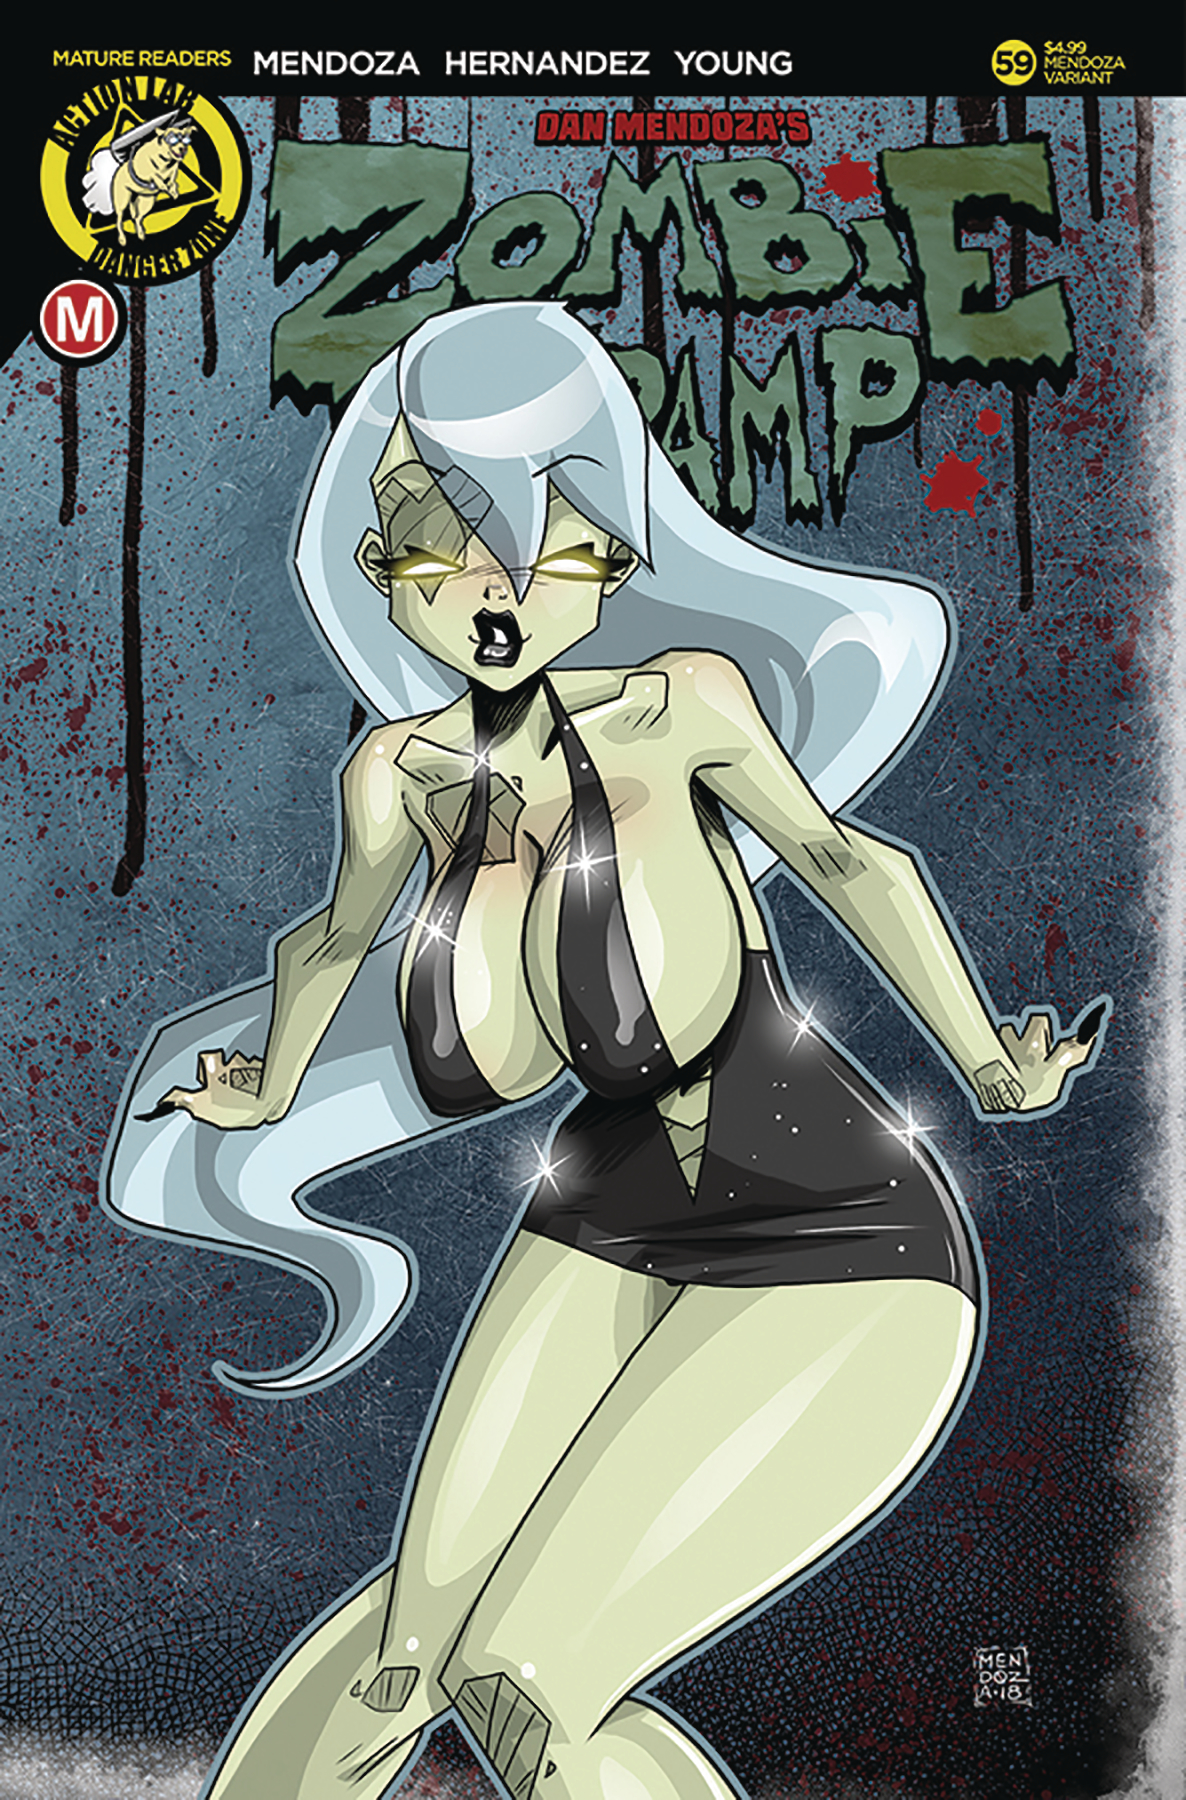 ZOMBIE TRAMP ONGOING #59 CVR E MENDOZA RISQUE LTD ED (MR)